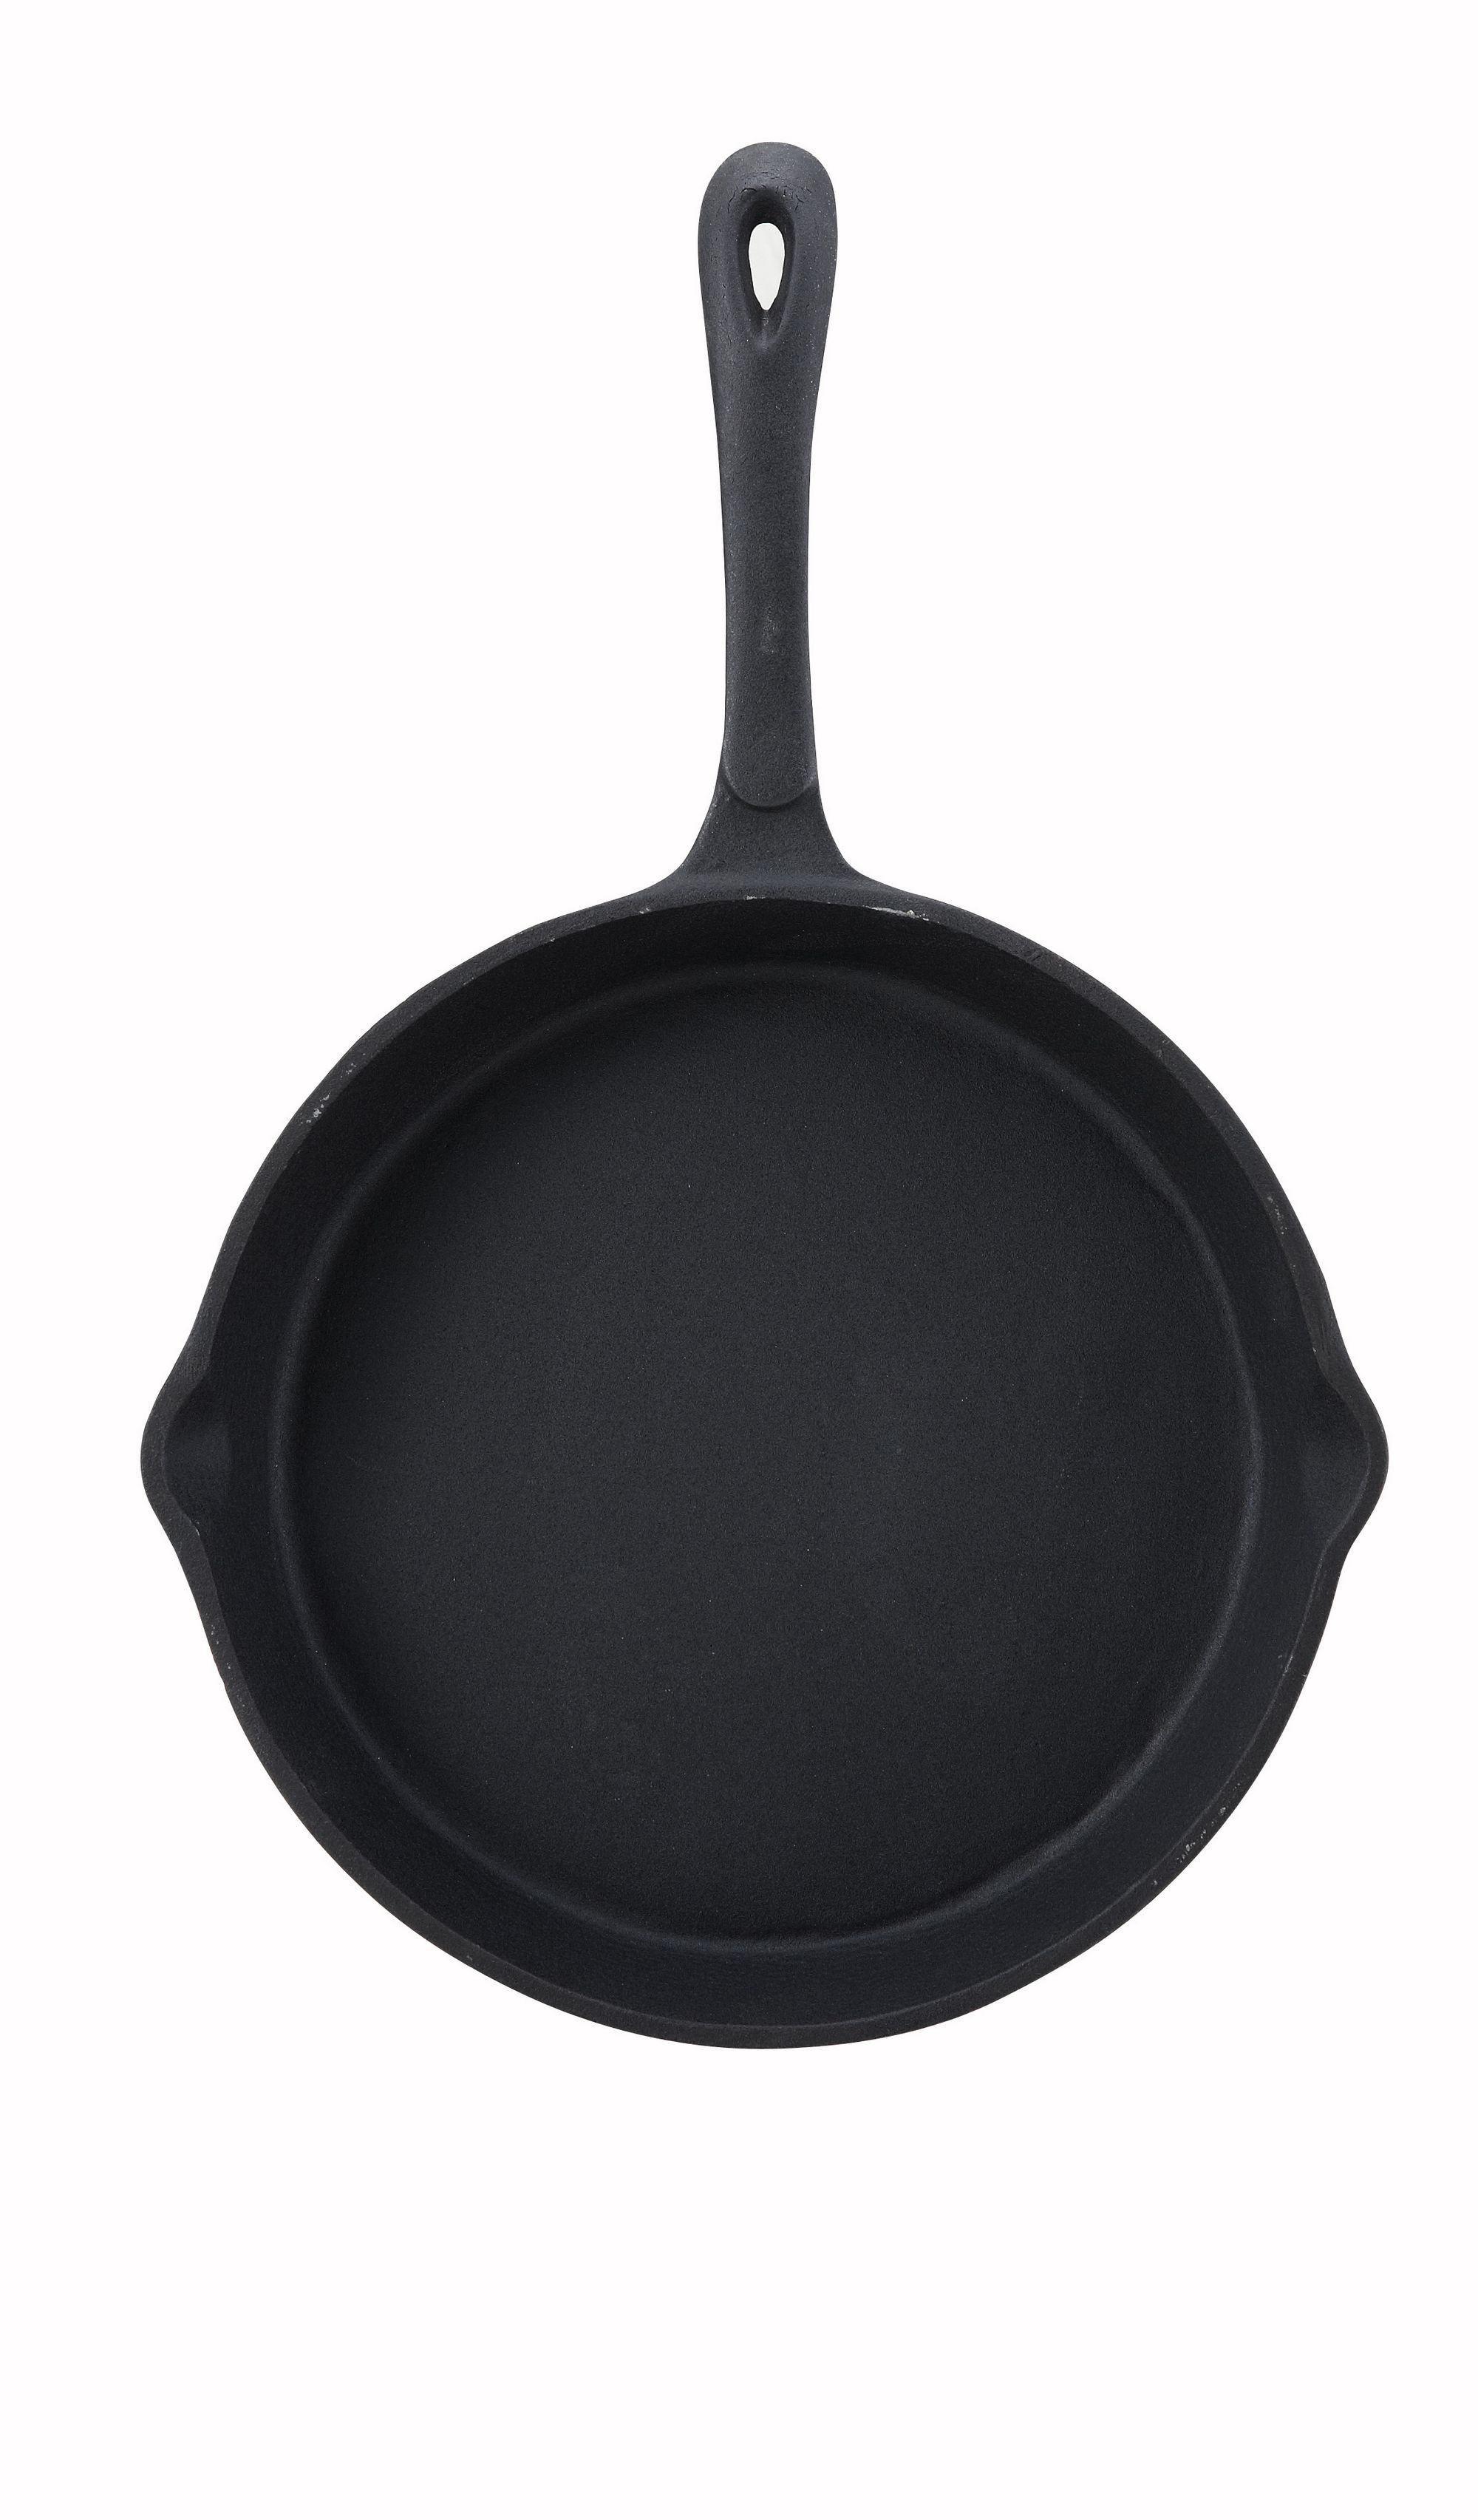 Winco RSK-10 Black-Enameled Cast Iron Skillet 10""